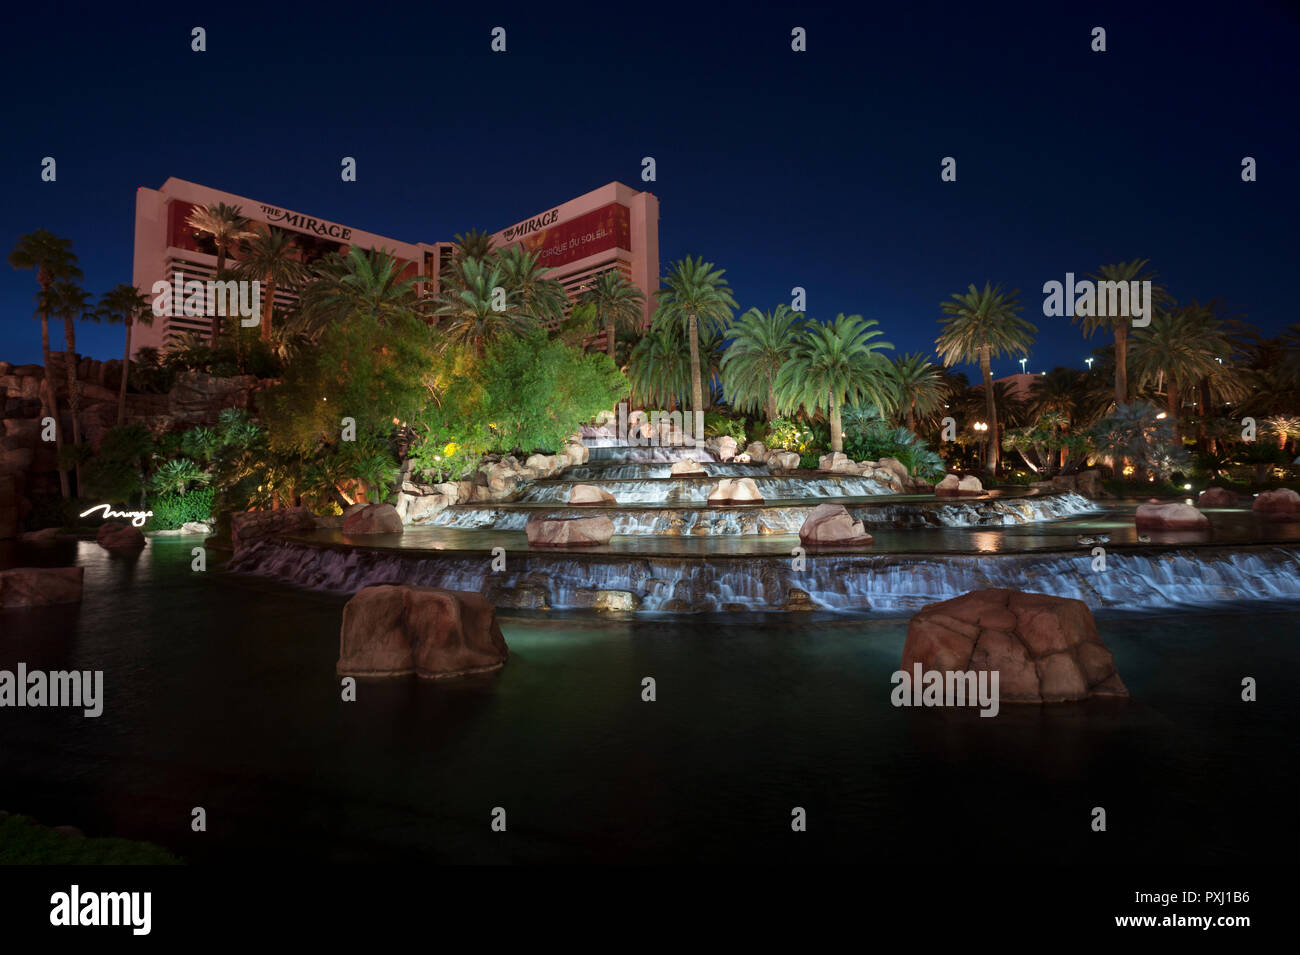 The Mirage Hotel and its tropical oasis and cascade at blue hour, Las Vegas, Nevada. - Stock Image